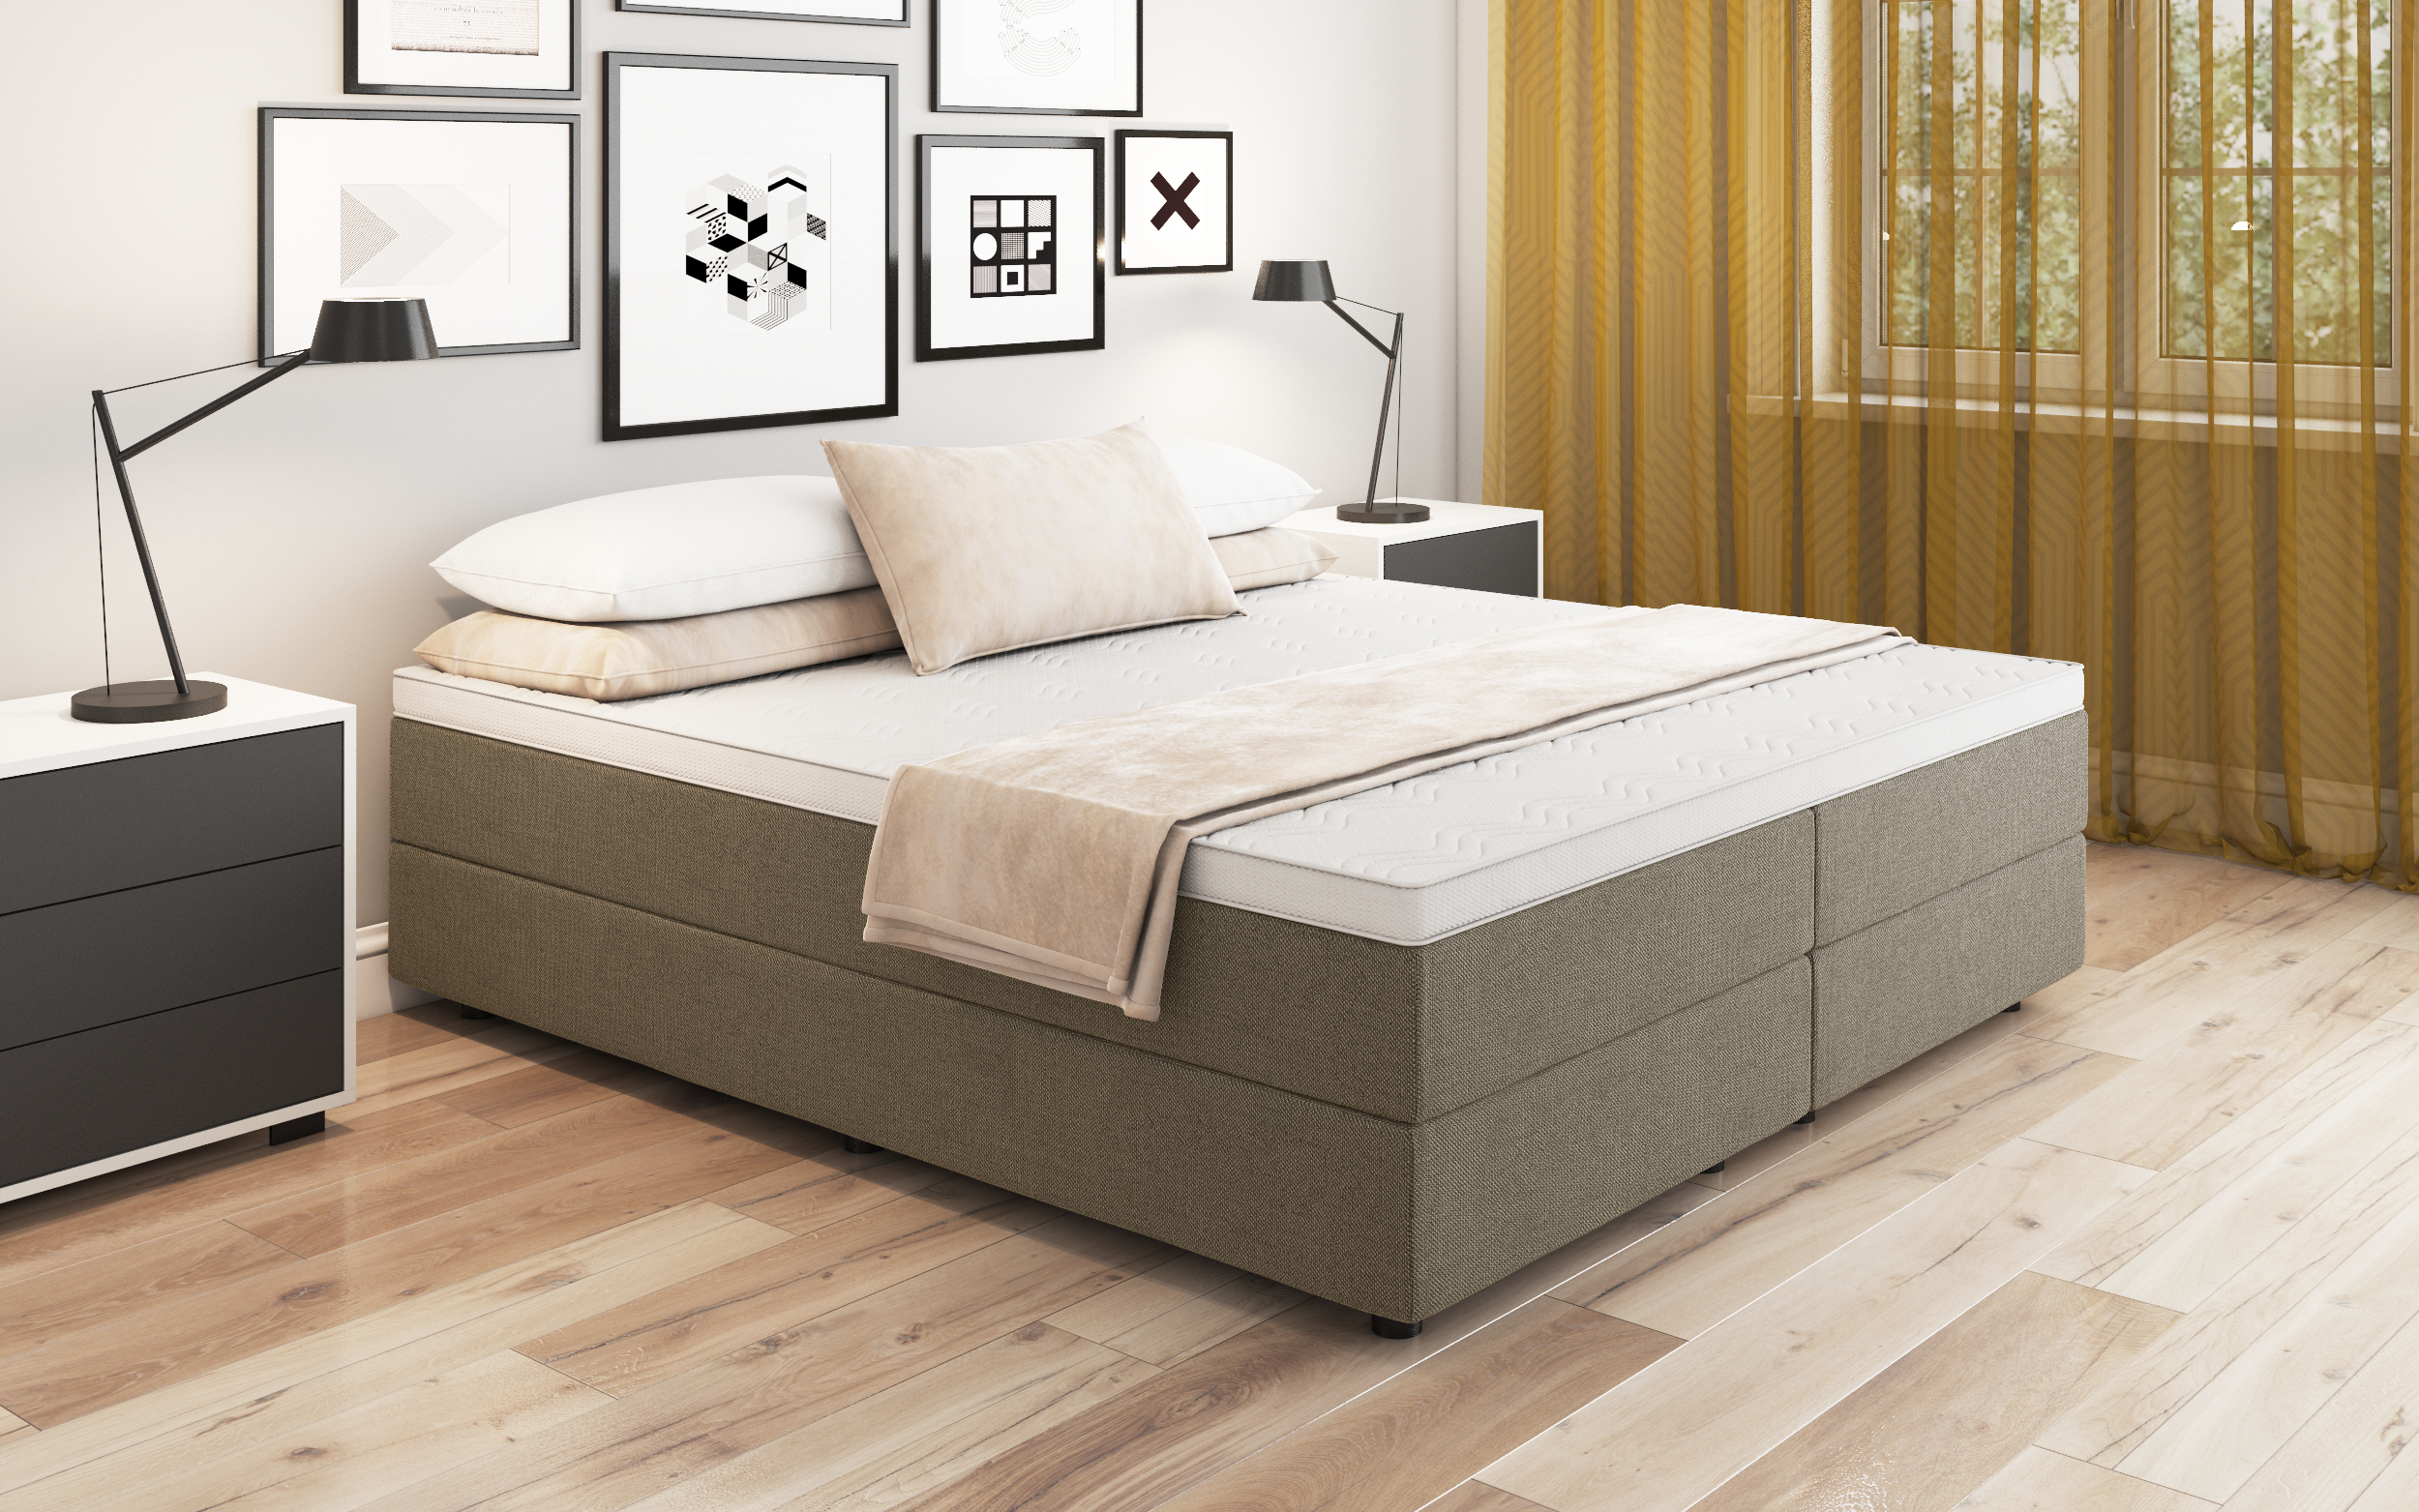 boxspringbett debora 80x220 cm cappuccino. Black Bedroom Furniture Sets. Home Design Ideas